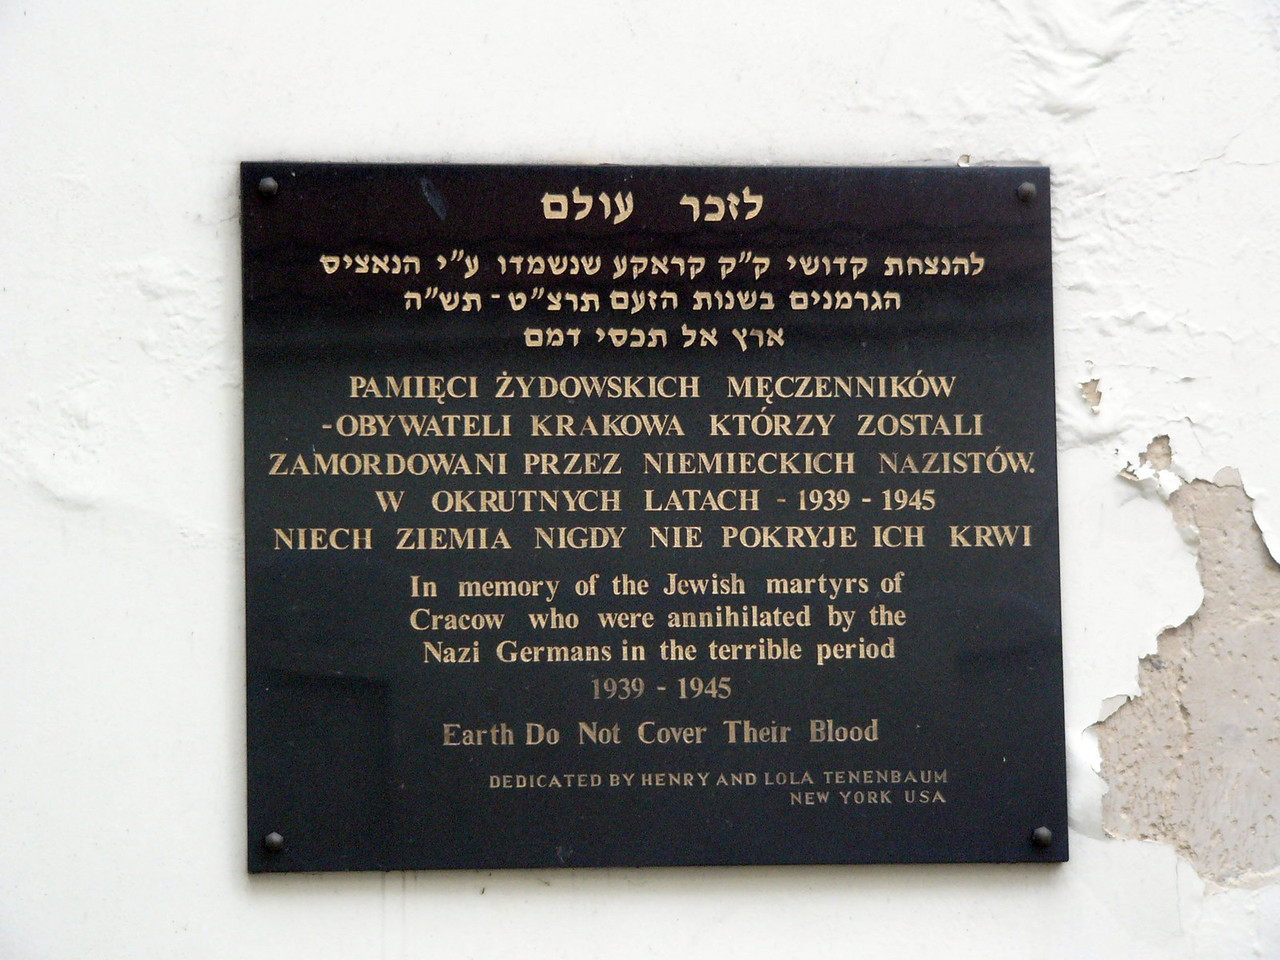 Plaque in the Remu Synagogue